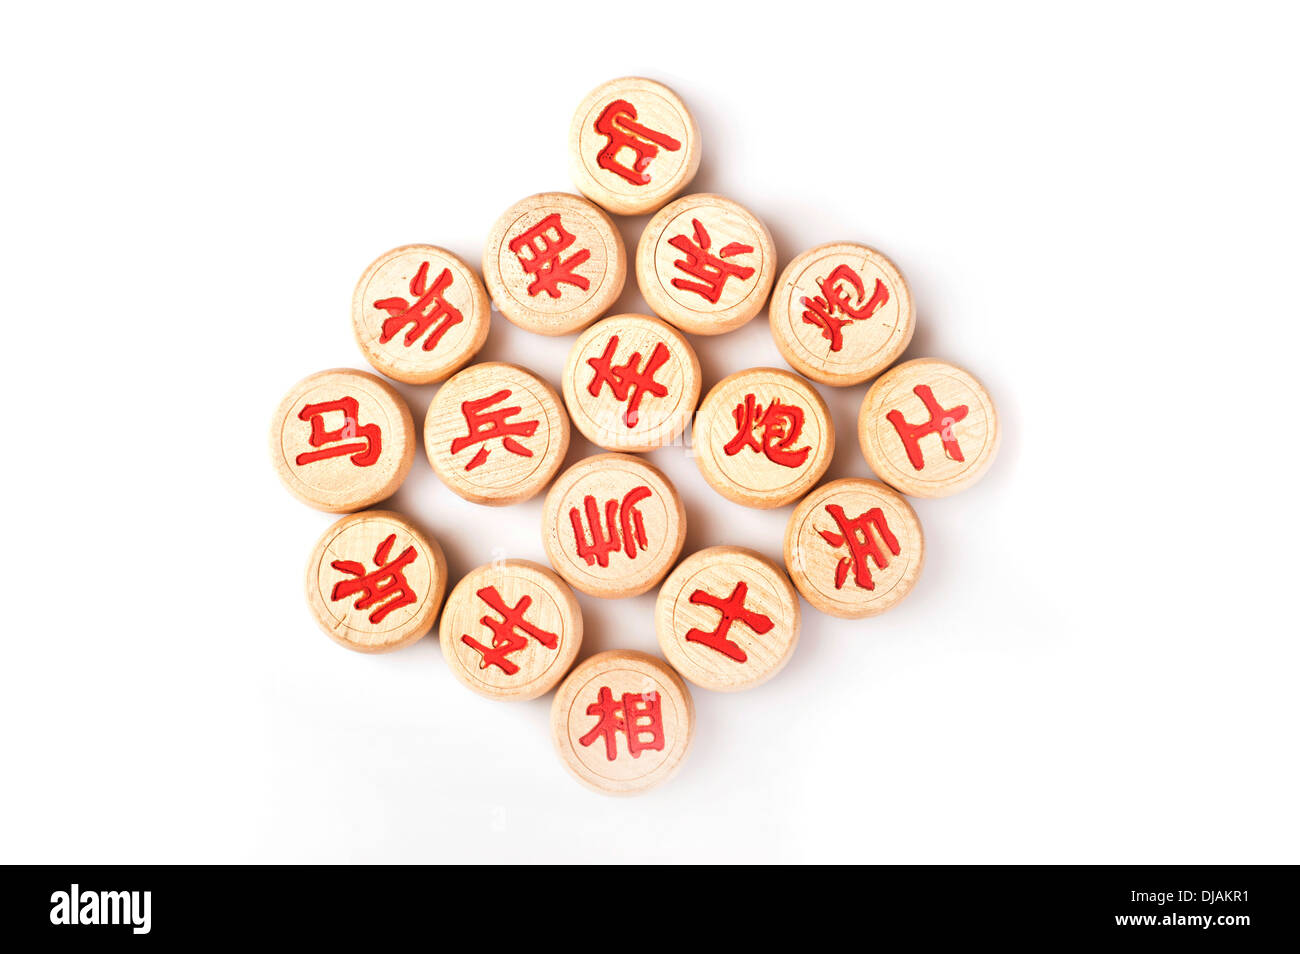 Chinese chess or Xiangqi pieces - Stock Image